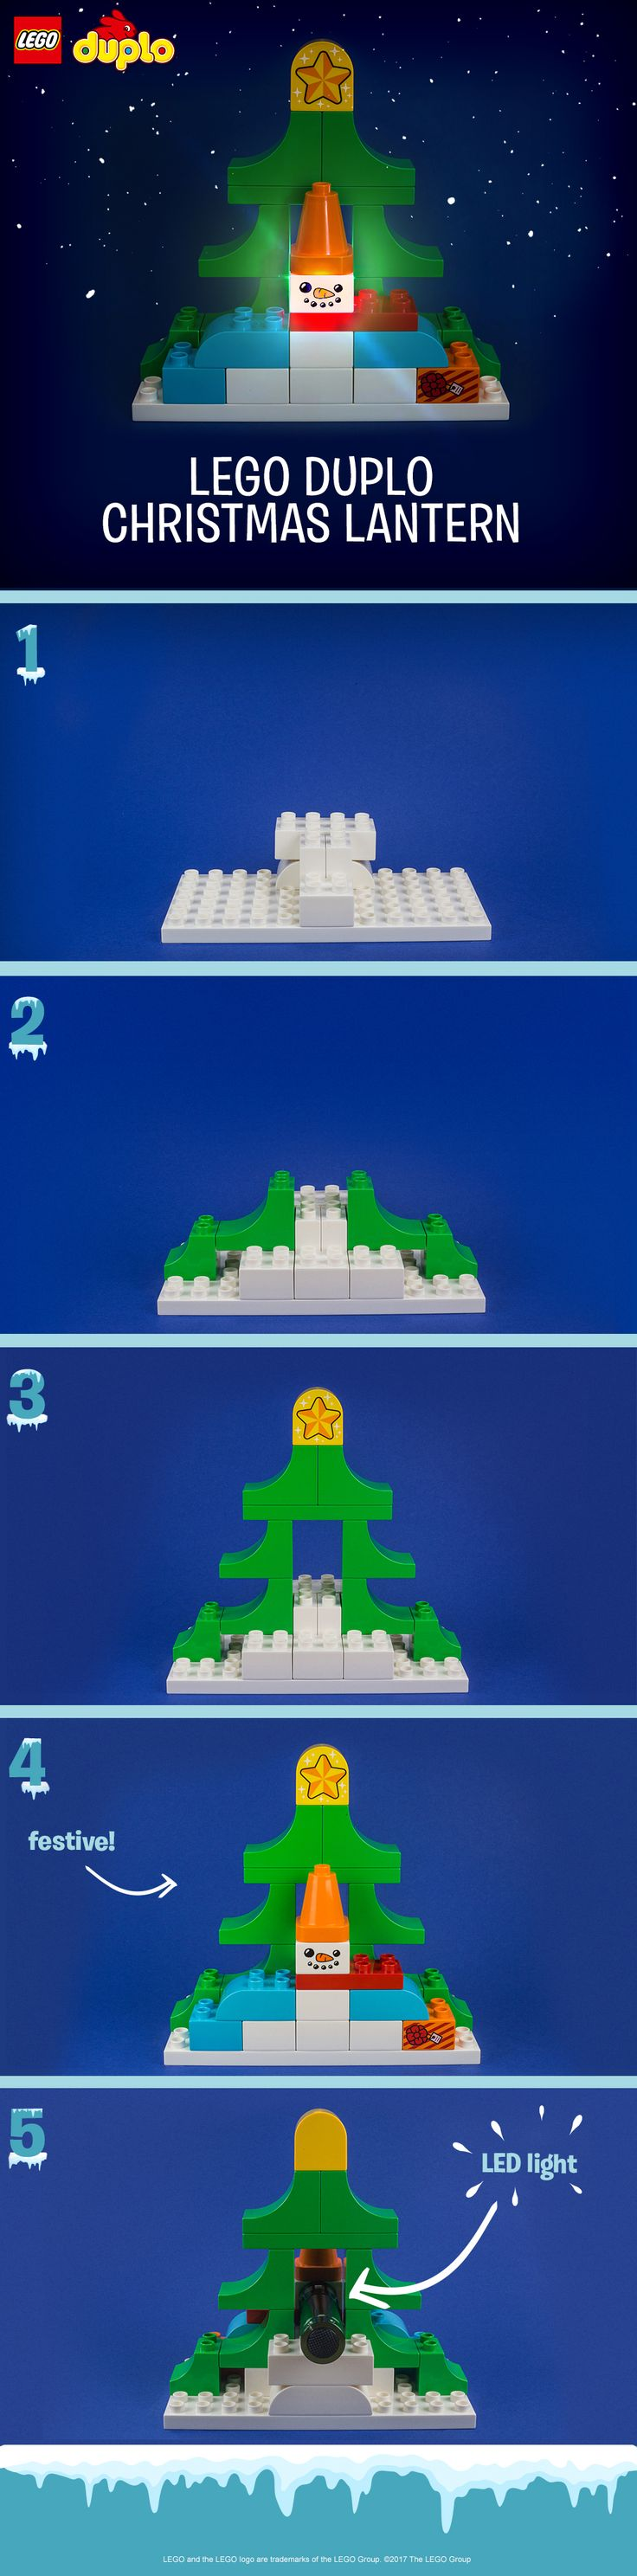 This Christmas building activity is fun for the whole family and perfect for a moment of quiet time during the busy holiday season. We've used bricks and characters from the LEGO DUPLO Santa's Winter Holiday set to make this festive lantern. Build a Christmassy scene from the set, then use an LED light or a cell phone to create the magical light up effect! Encourage your kids to try lots of different versions - they can even use it to decorate the house or their bedroom afterwards. Click to…